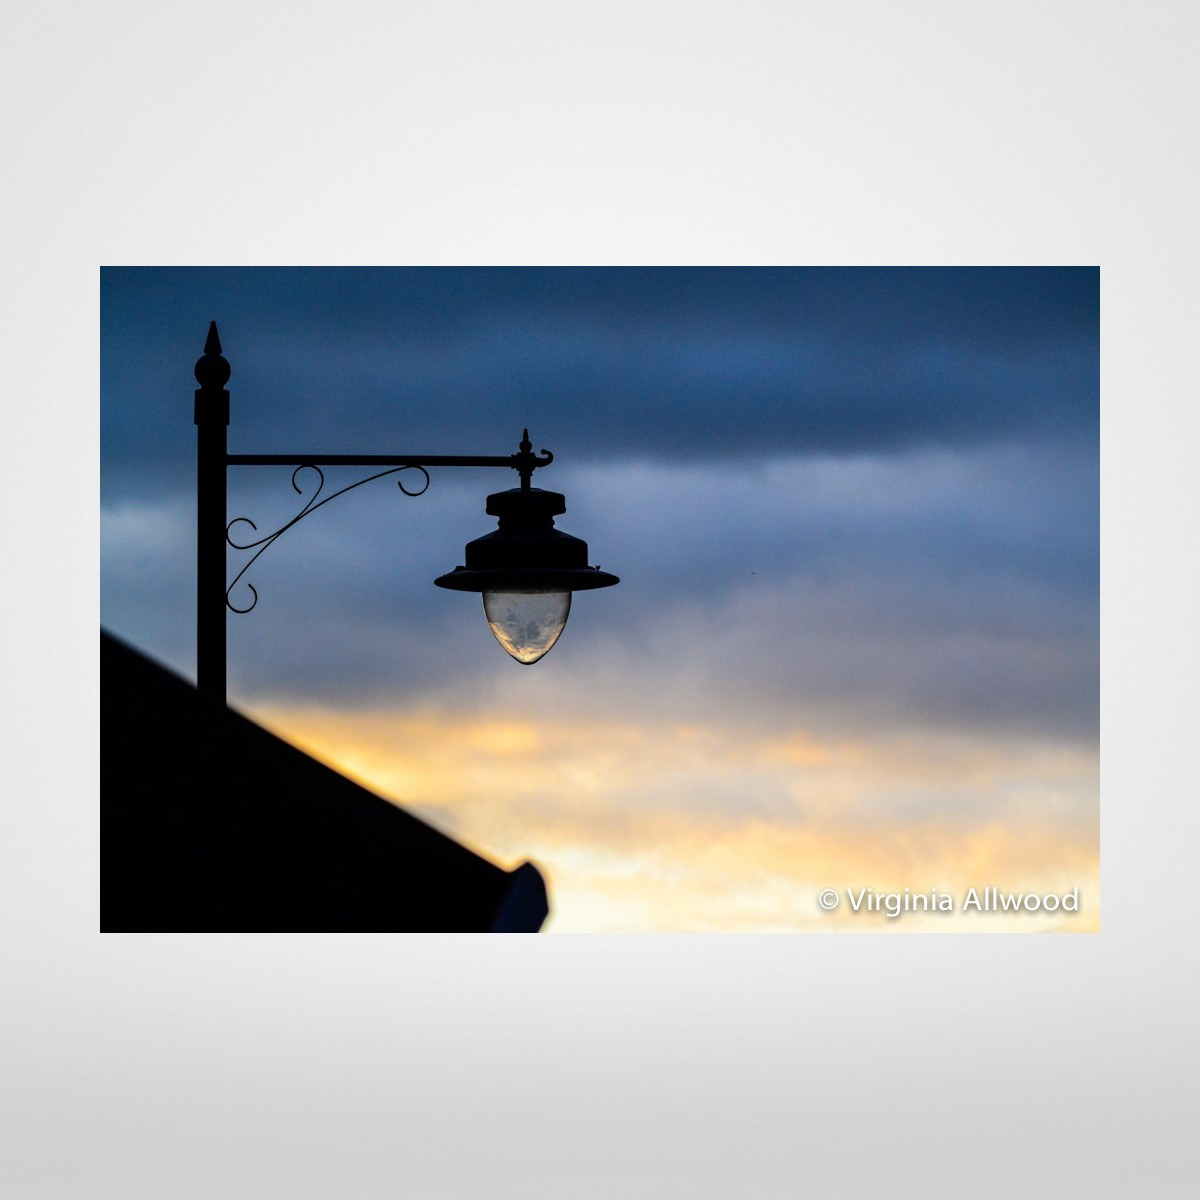 Dawn on Park Street (Bristol)  - Photographic Print by Virginia Allwood at The Bristol Shop